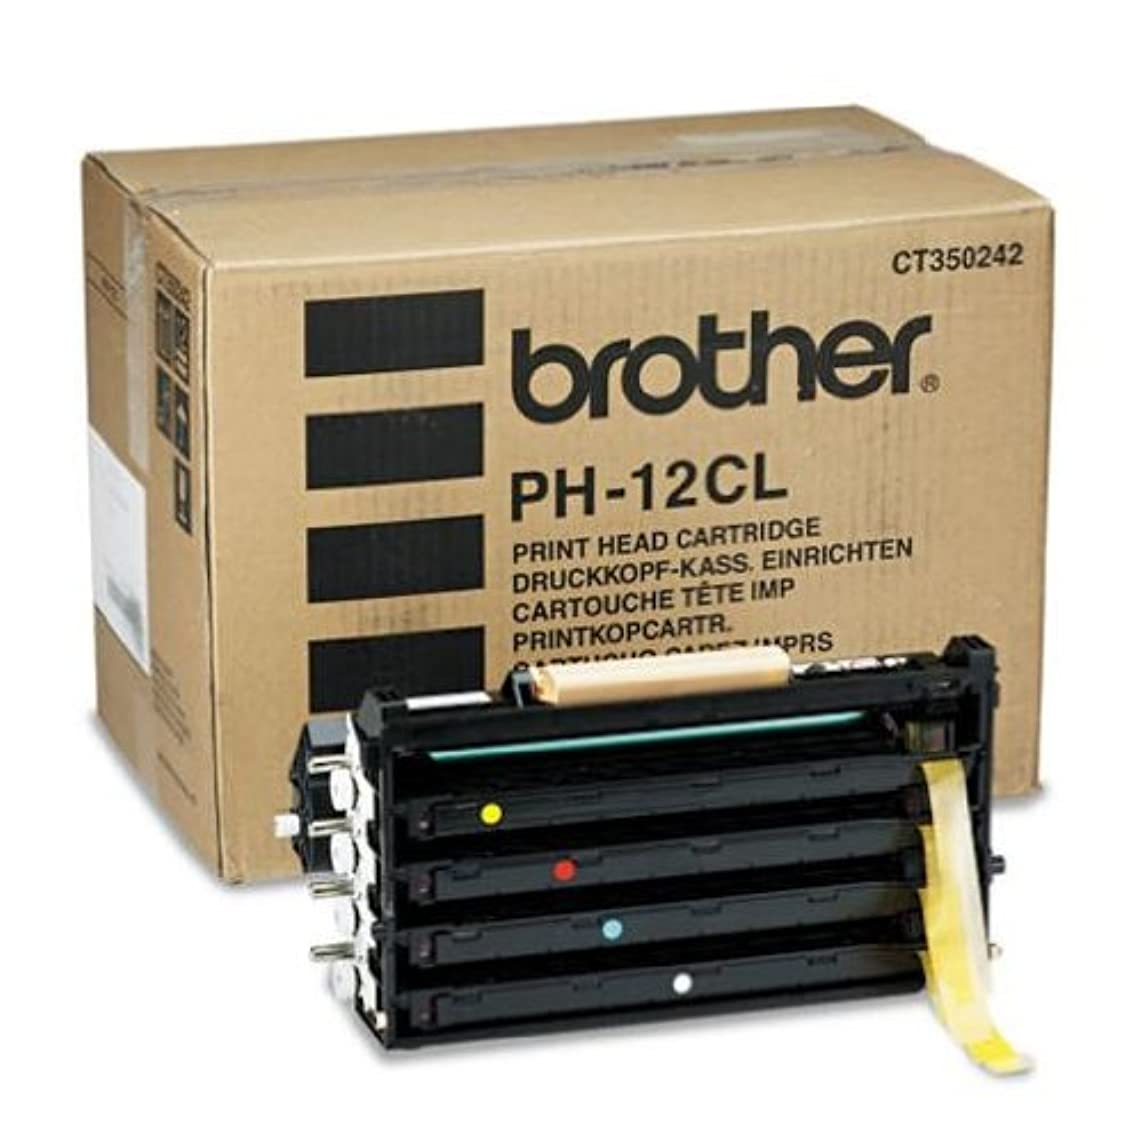 Brother Laser drum kit for color laser printer 4200cn, 30,000 Page Yield (PH12CL) - Retail Packaging